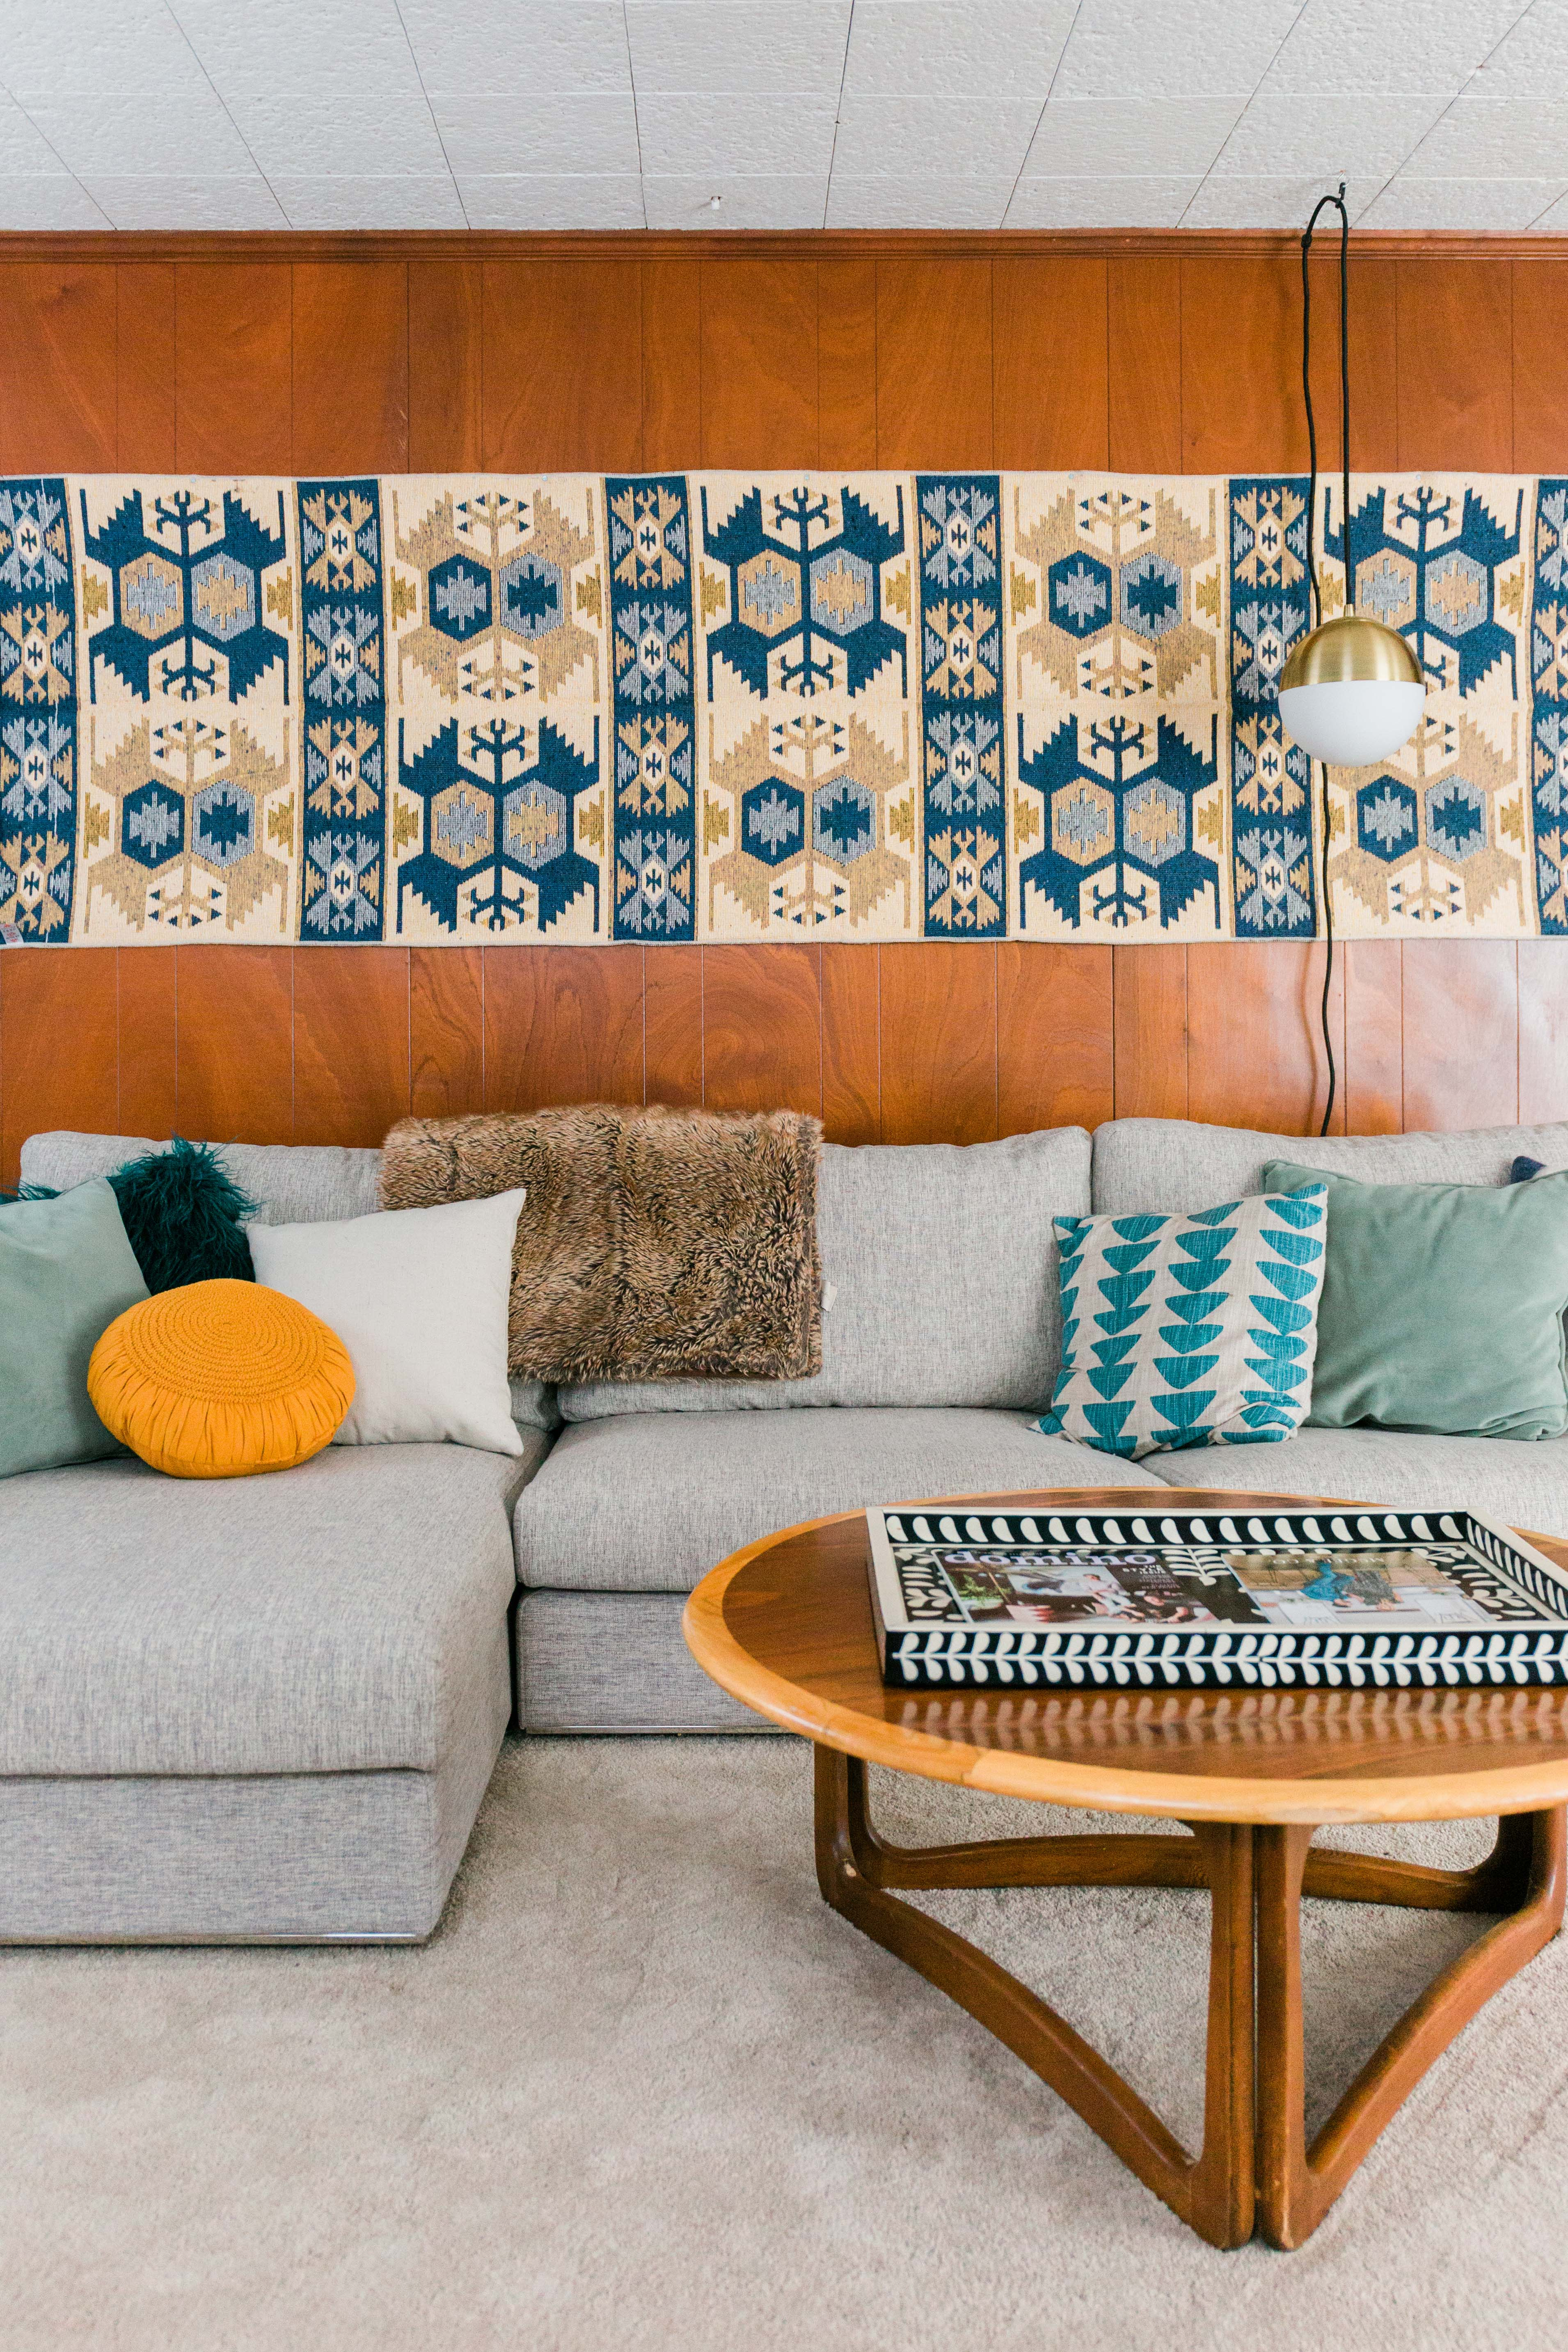 textile wall art above living room couch